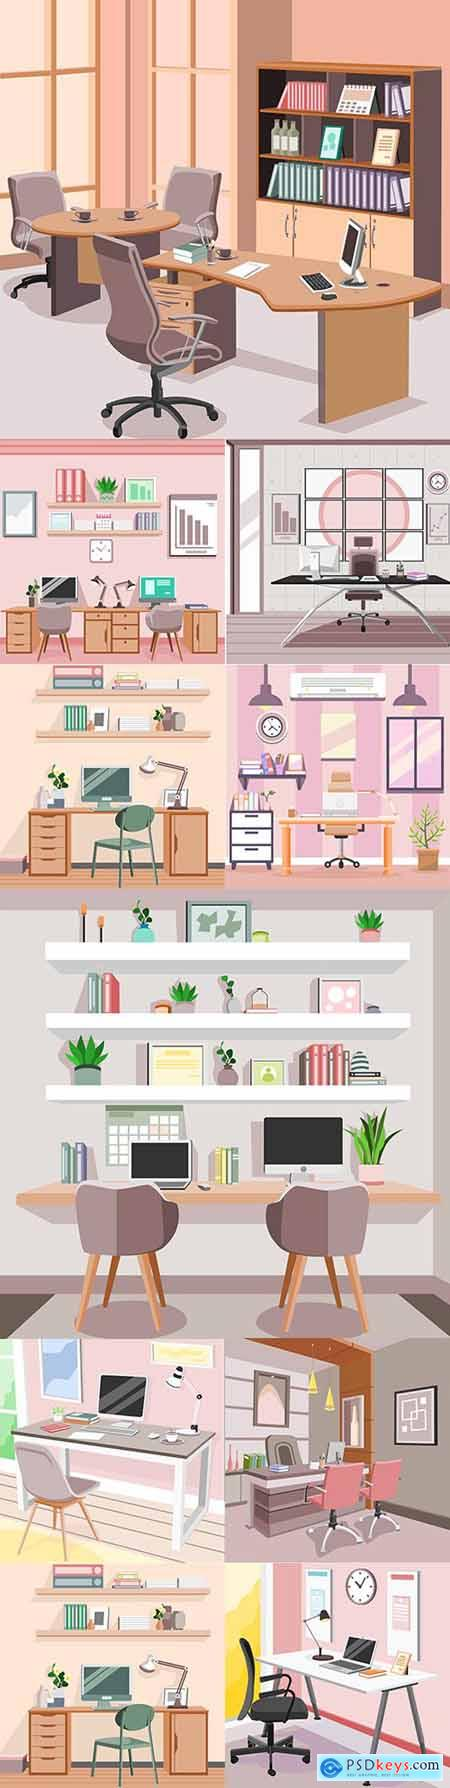 Creative workplace modern interior office and apartment